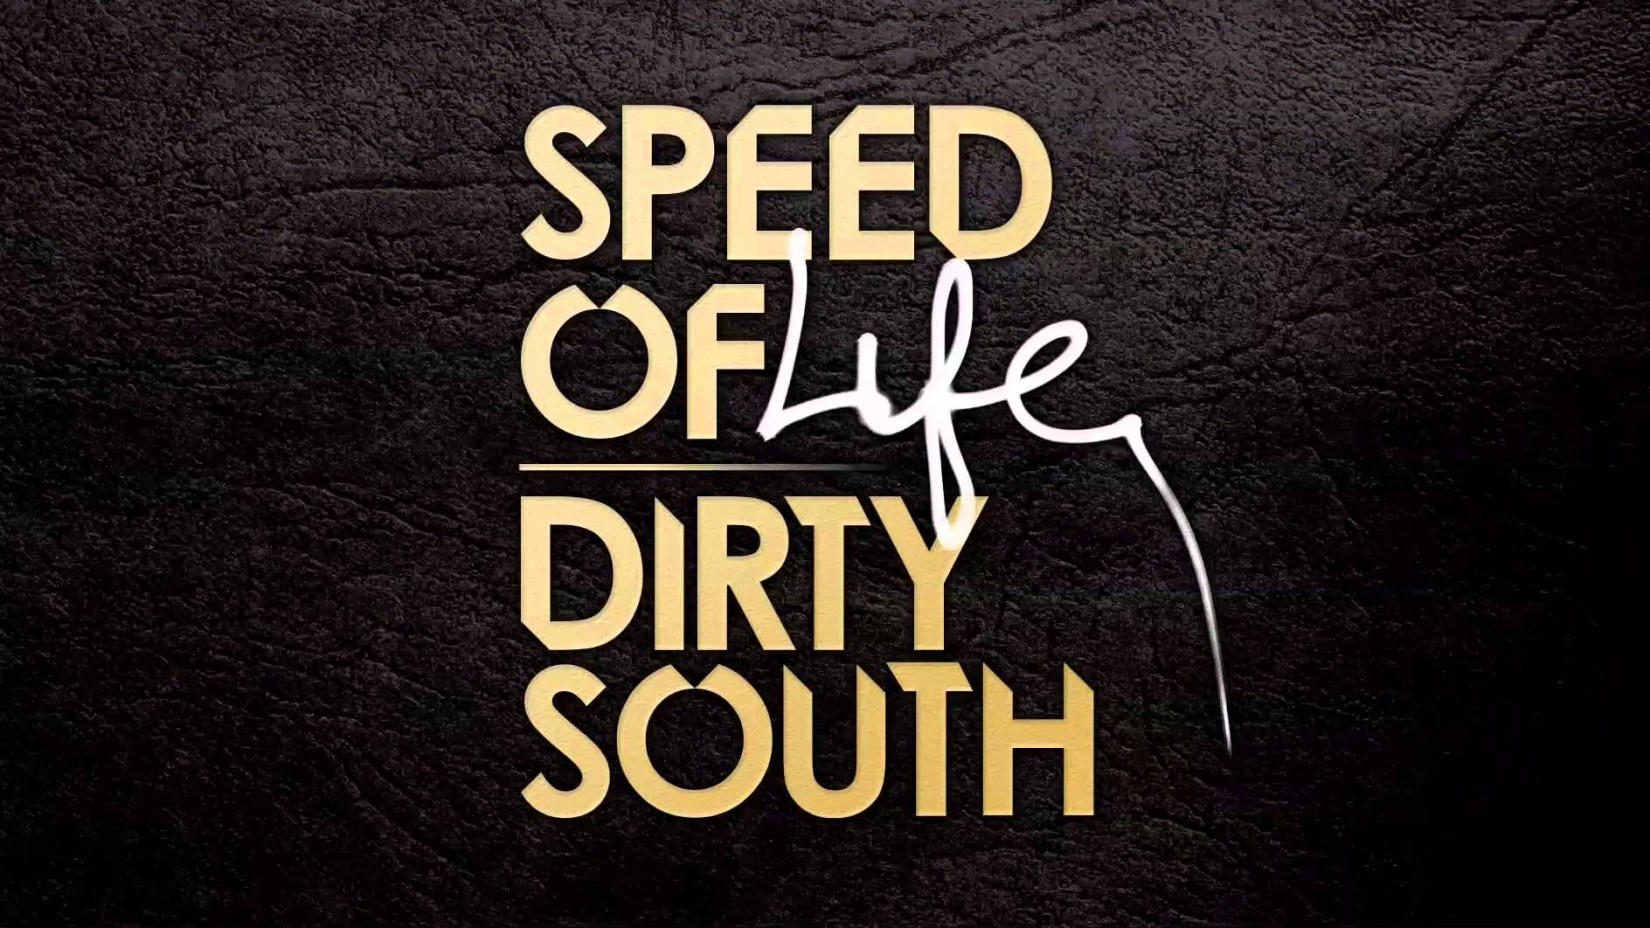 the Dirty South - Speed of Life Font pls